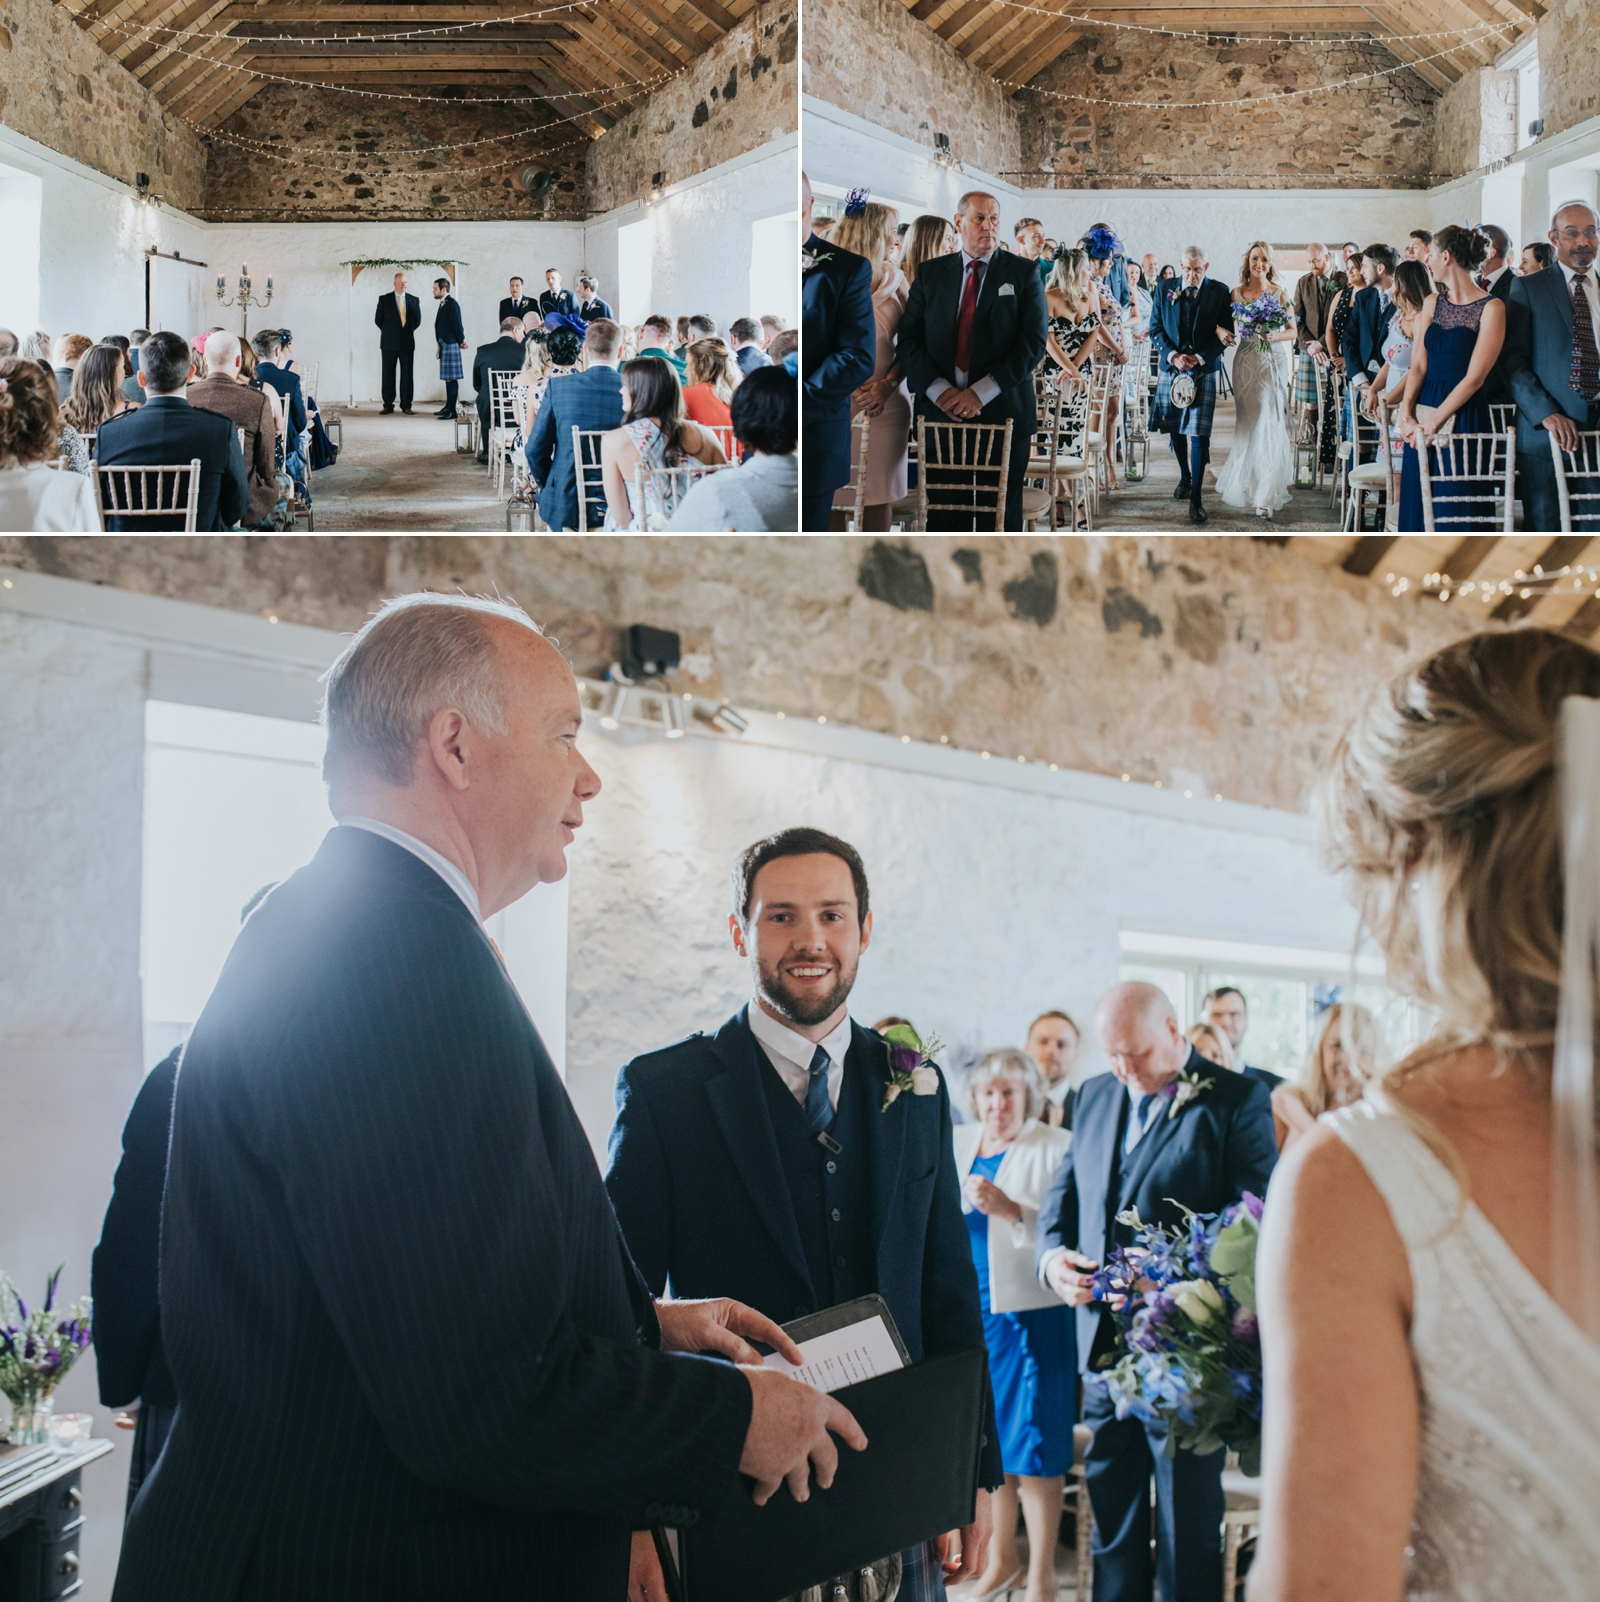 cow-shed-crail-rustic-wedding-gemma-andy-loraine-ross-photographygemma-andy-wedding-0275.jpg